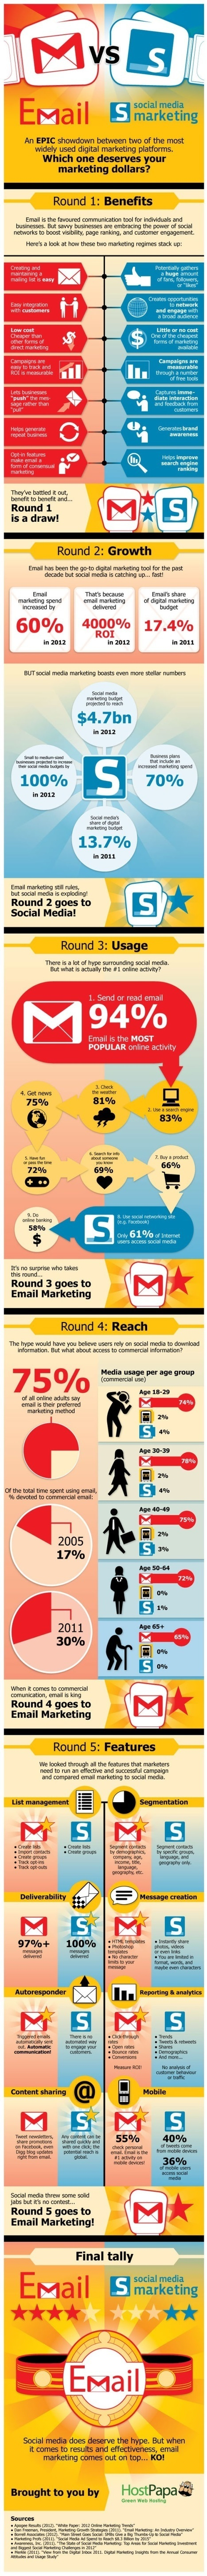 Who wins the marketing war between email versus social media? [INFOGRAPHIC] - Tnooz | Visual Content Strategy | Scoop.it